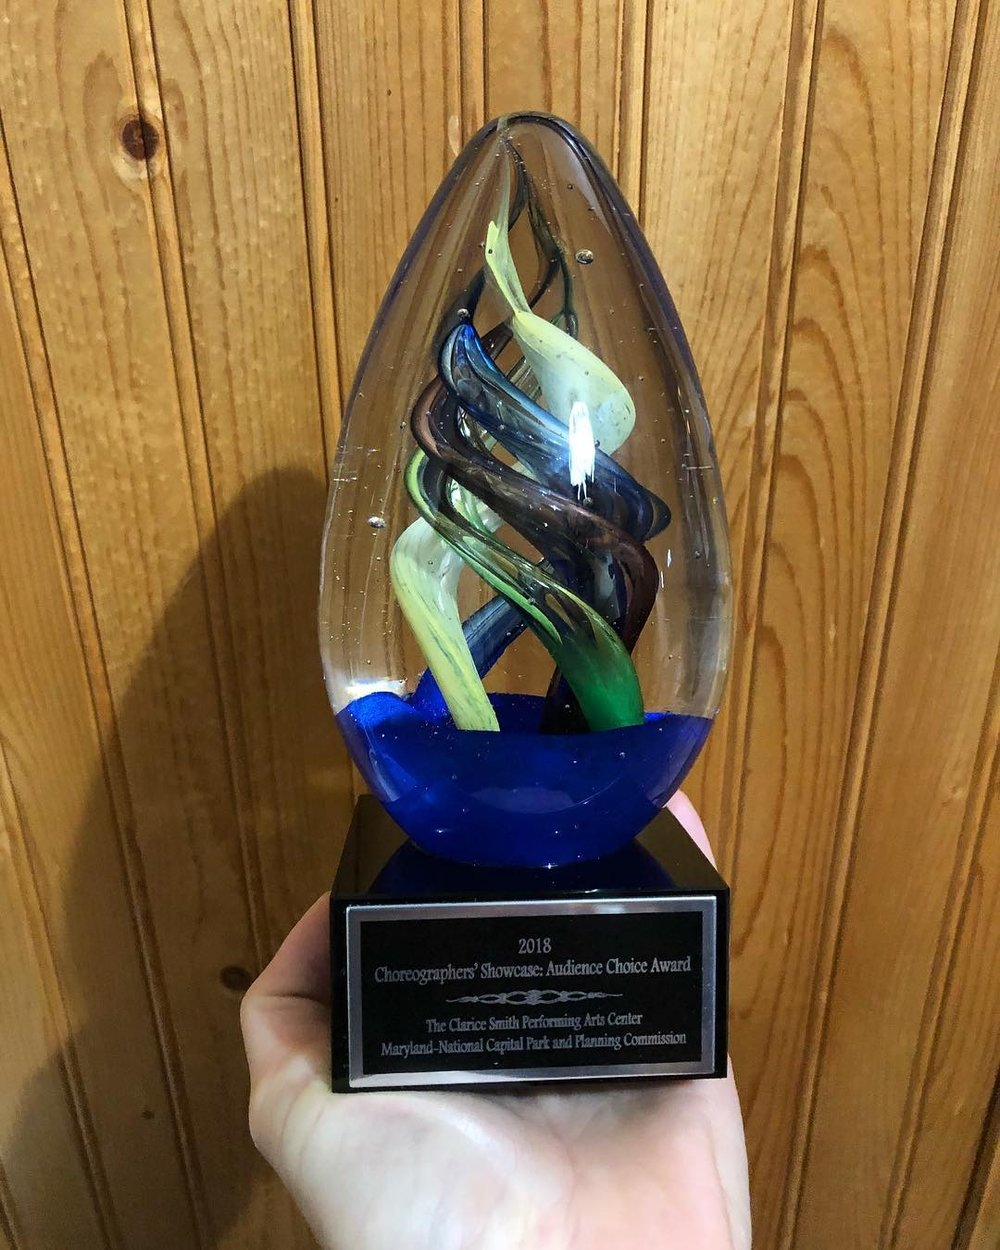 - We are so humbled to have received the 2018 Choreographers' Showcase Audience Choice Award at the 35th Annual Choreographers' Showcase.THANK YOU from the bottom of our hearts!!!